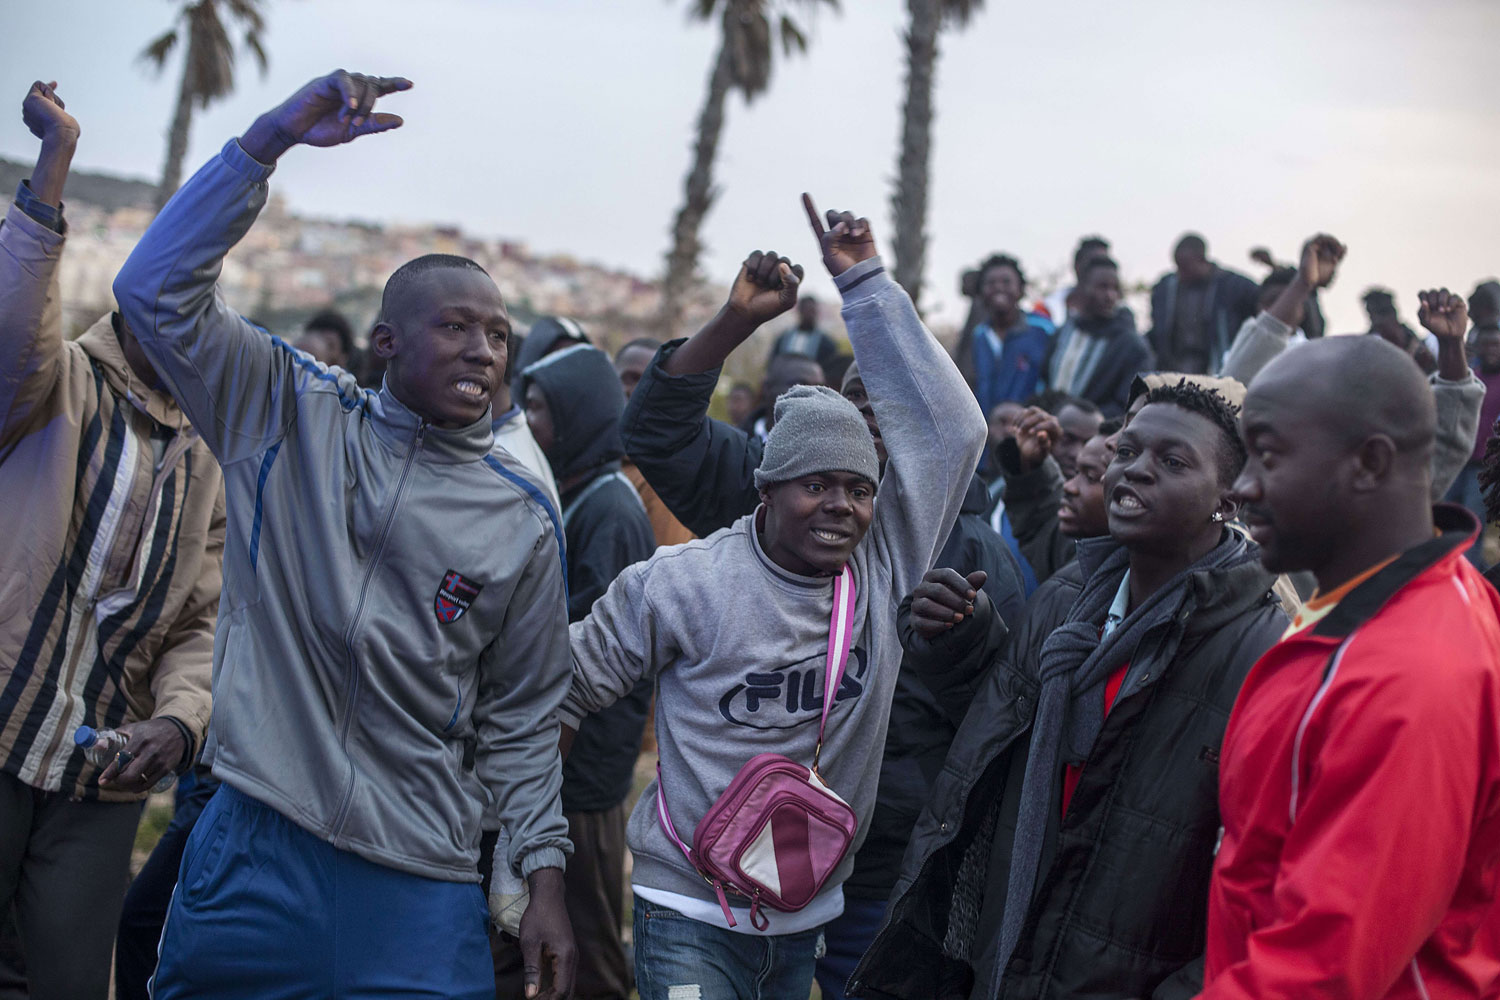 Would-be immigrants of the Centre for Temporary Stay of Immigrants cheer others who want to cross the fence near Beni Enza, into the north African Spanish enclave of Melilla on March 28, 2014. Hundreds launched a dawn assault to cross into the Spanish city and dozen made it across.